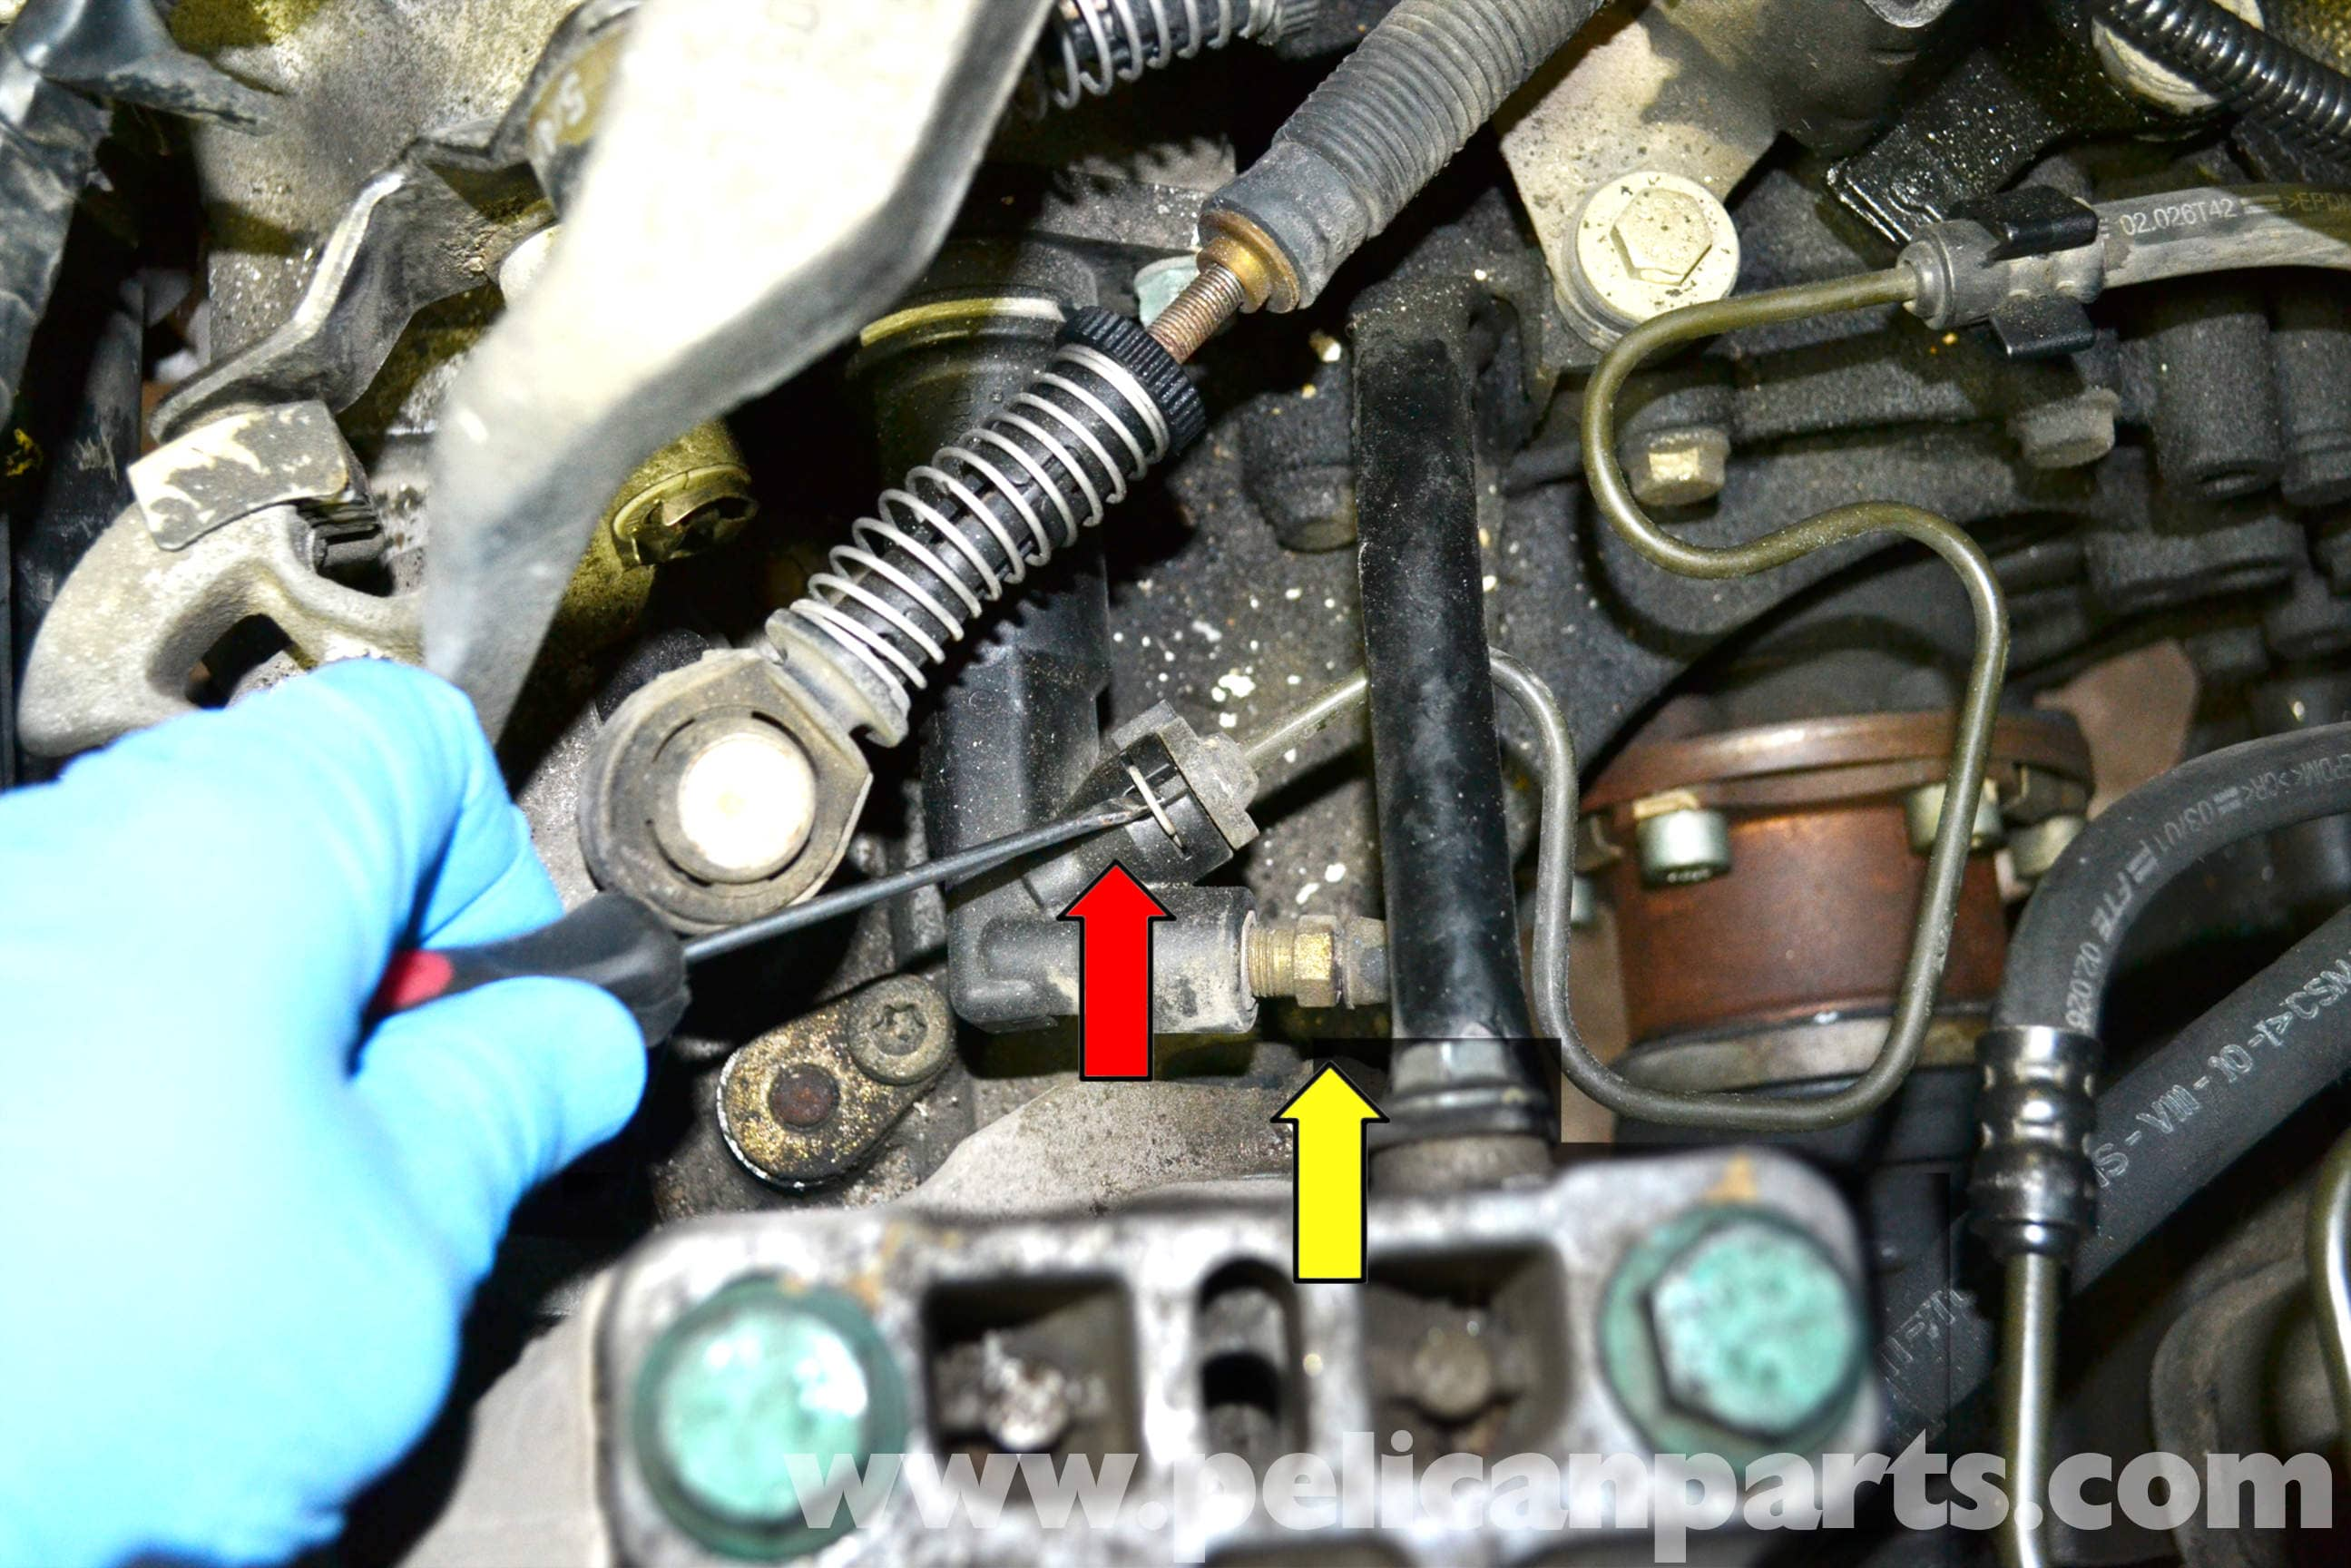 1 8t Oil Pressure Sensor Location additionally Gmc Terrain Oil Filter Location as well Showthread besides 97 7 3 Powerstroke Fuel Bowl Diagram further Dodge Challenger 100th Anniversary Edition 2014. on volkswagen transmission dipstick location